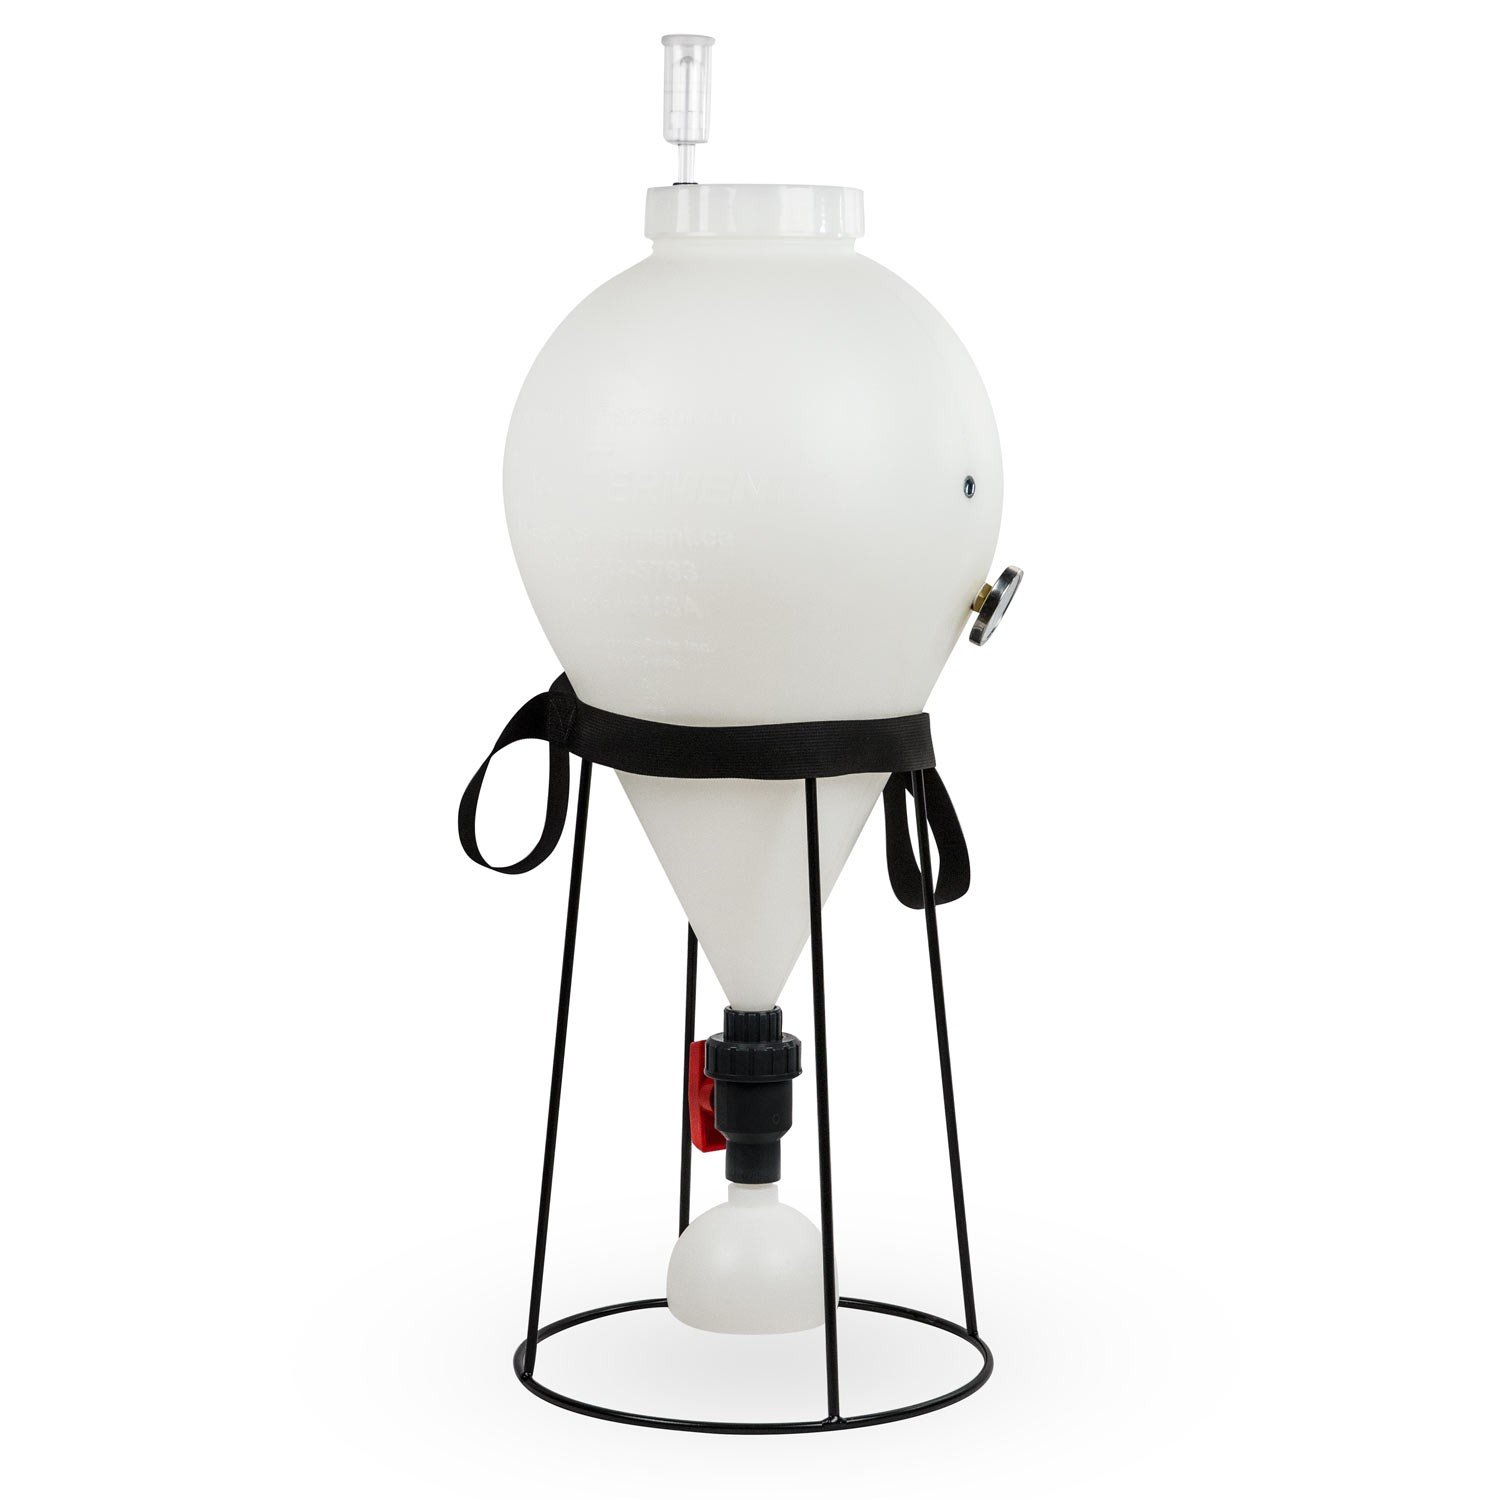 Plastic Spoon HOZQ8-1618 Conical Fermenter 7.9 Gallon Home-Brew Kit SPECIAL EDITION - Wine Fermentation or a Hard Cider brewing kit FastFerment